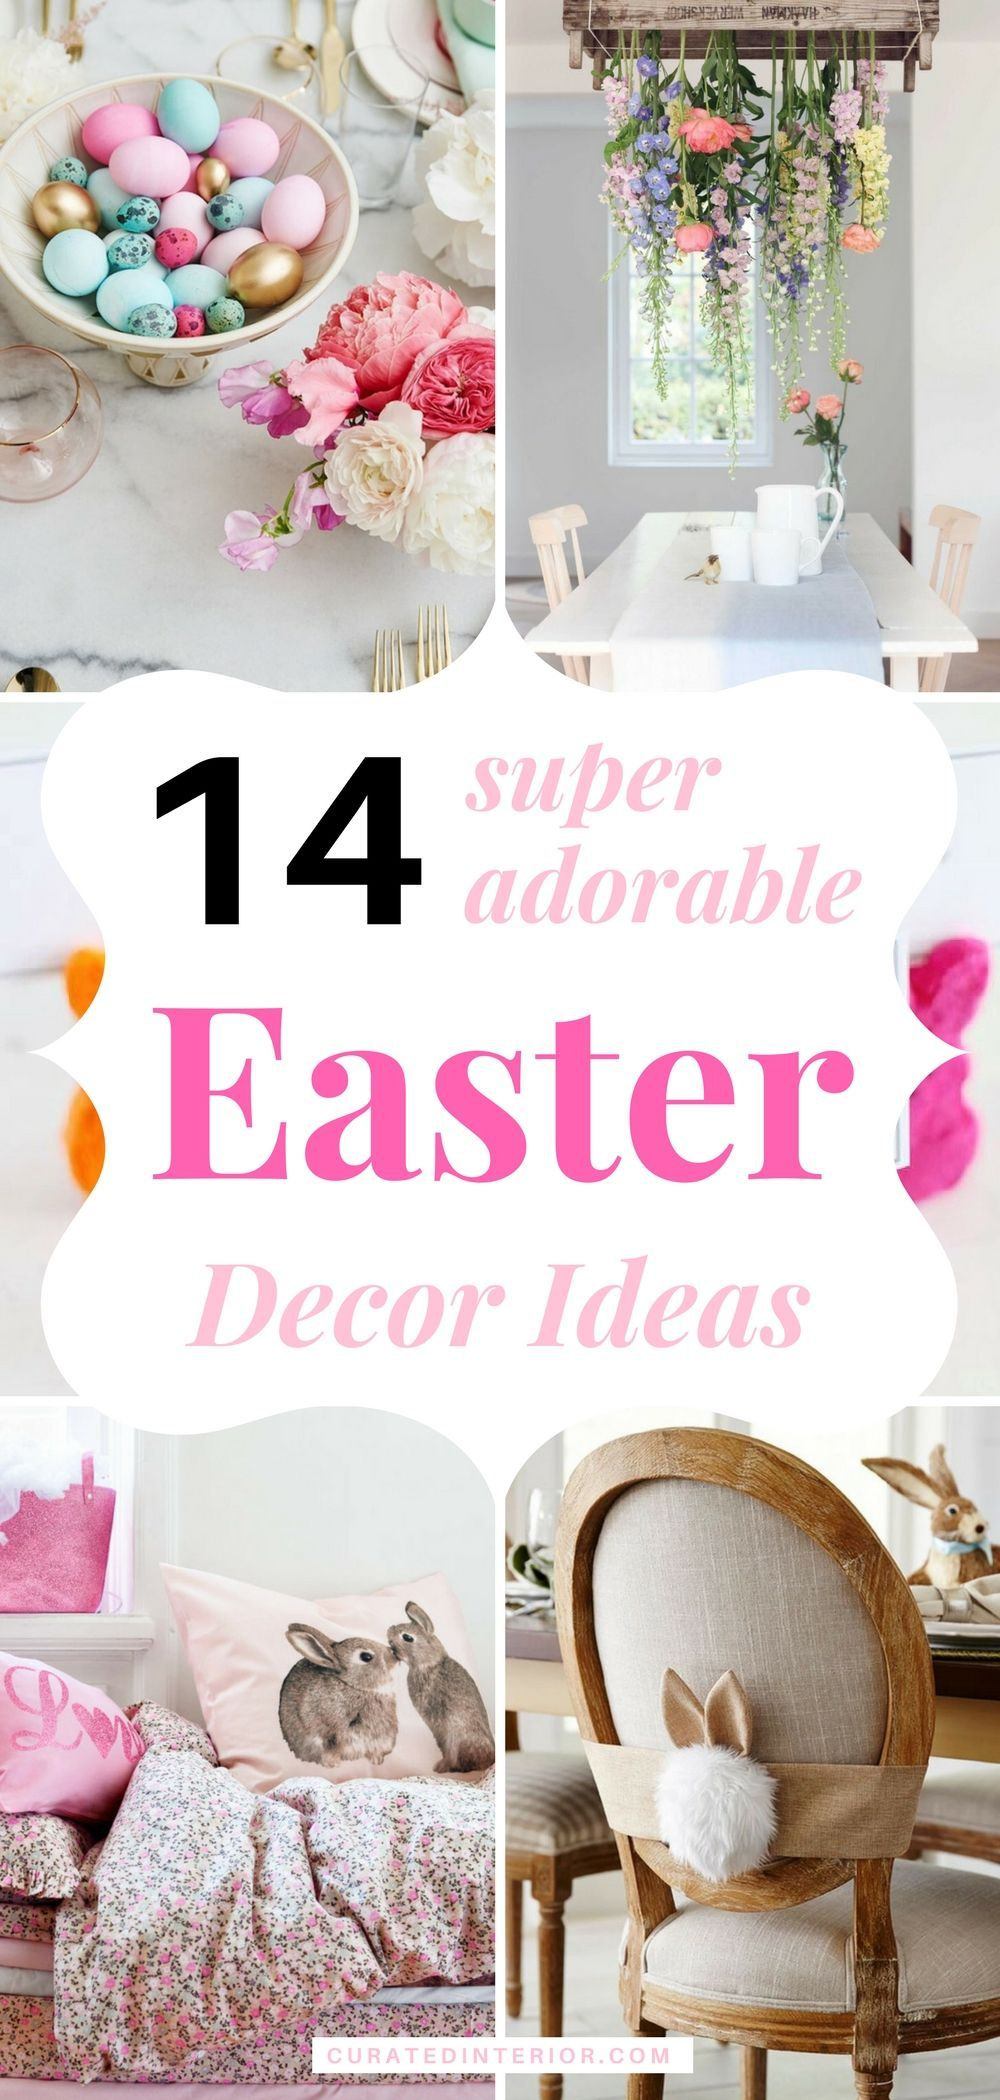 Easy Easter ideas to decorate your home picture